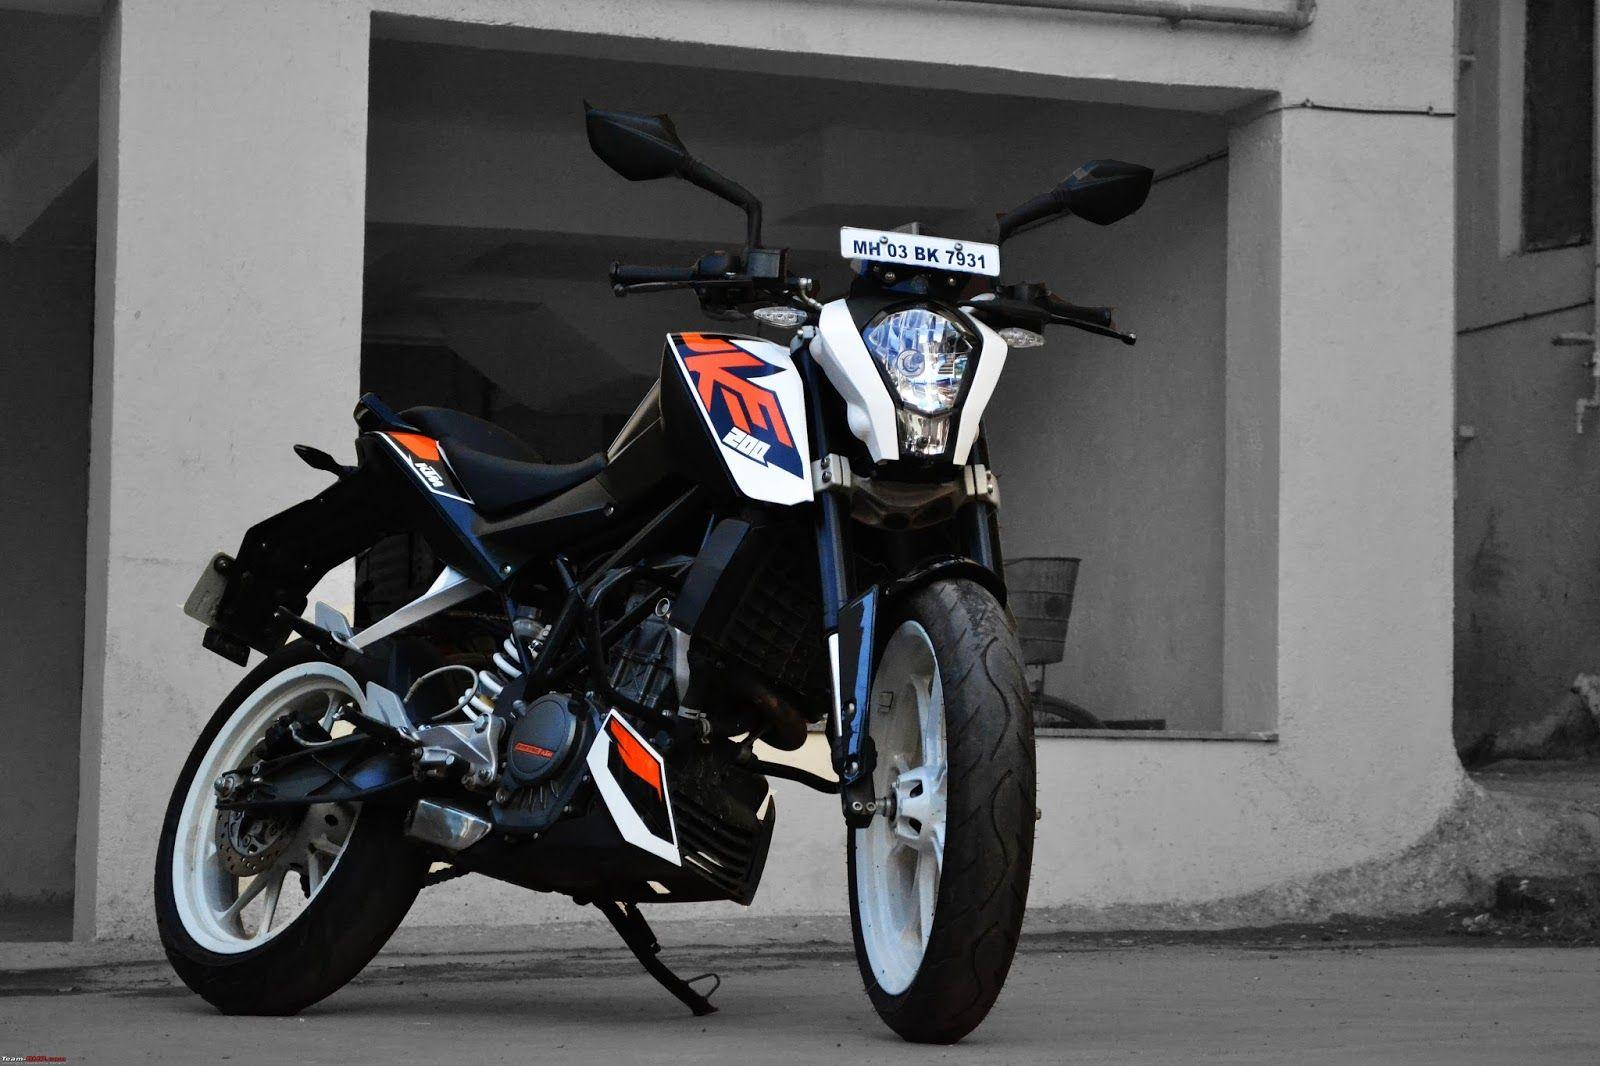 KTM Duke 200 Black Colour HD Wallpapers And Image Download